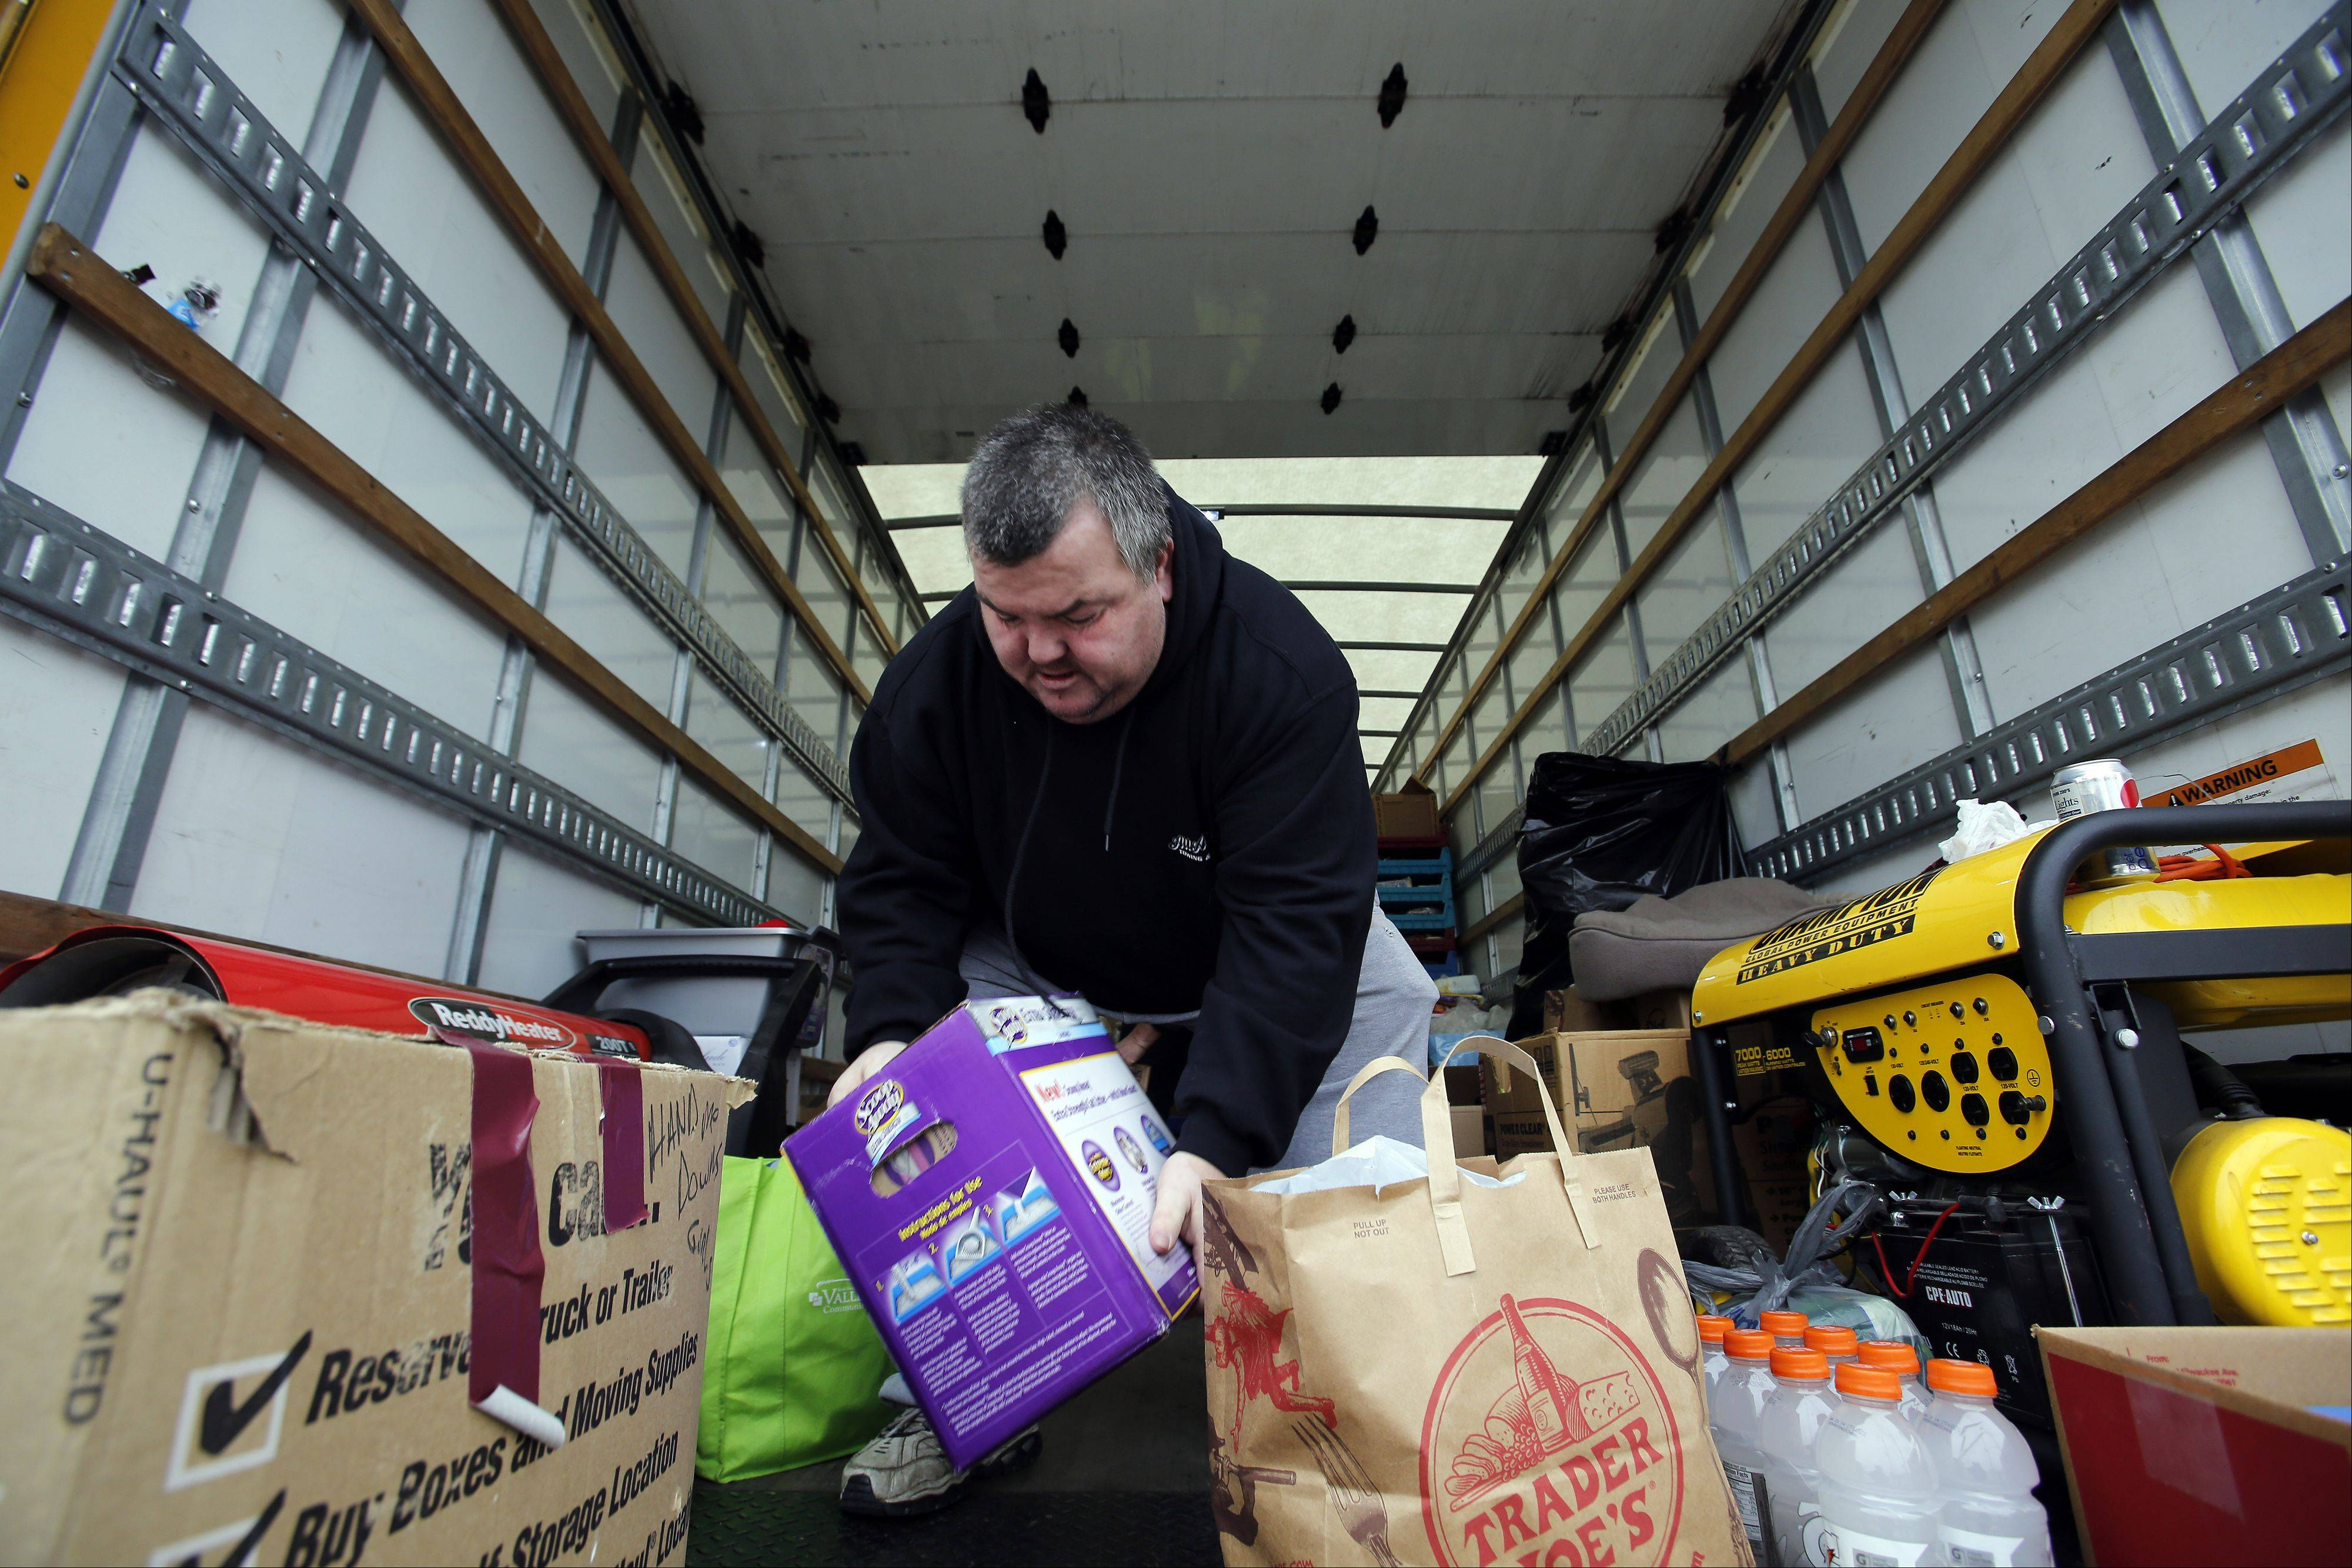 Mike Lyp, owner of All Around Towing & Auto, loads up a large rental truck in Huntley Wednesday with donations for the areas devastated by the recent tornadoes. The Lake in the Hills resident leaves for Washington, Ill., at 4:30 a.m. Thursday to make the first delivery.